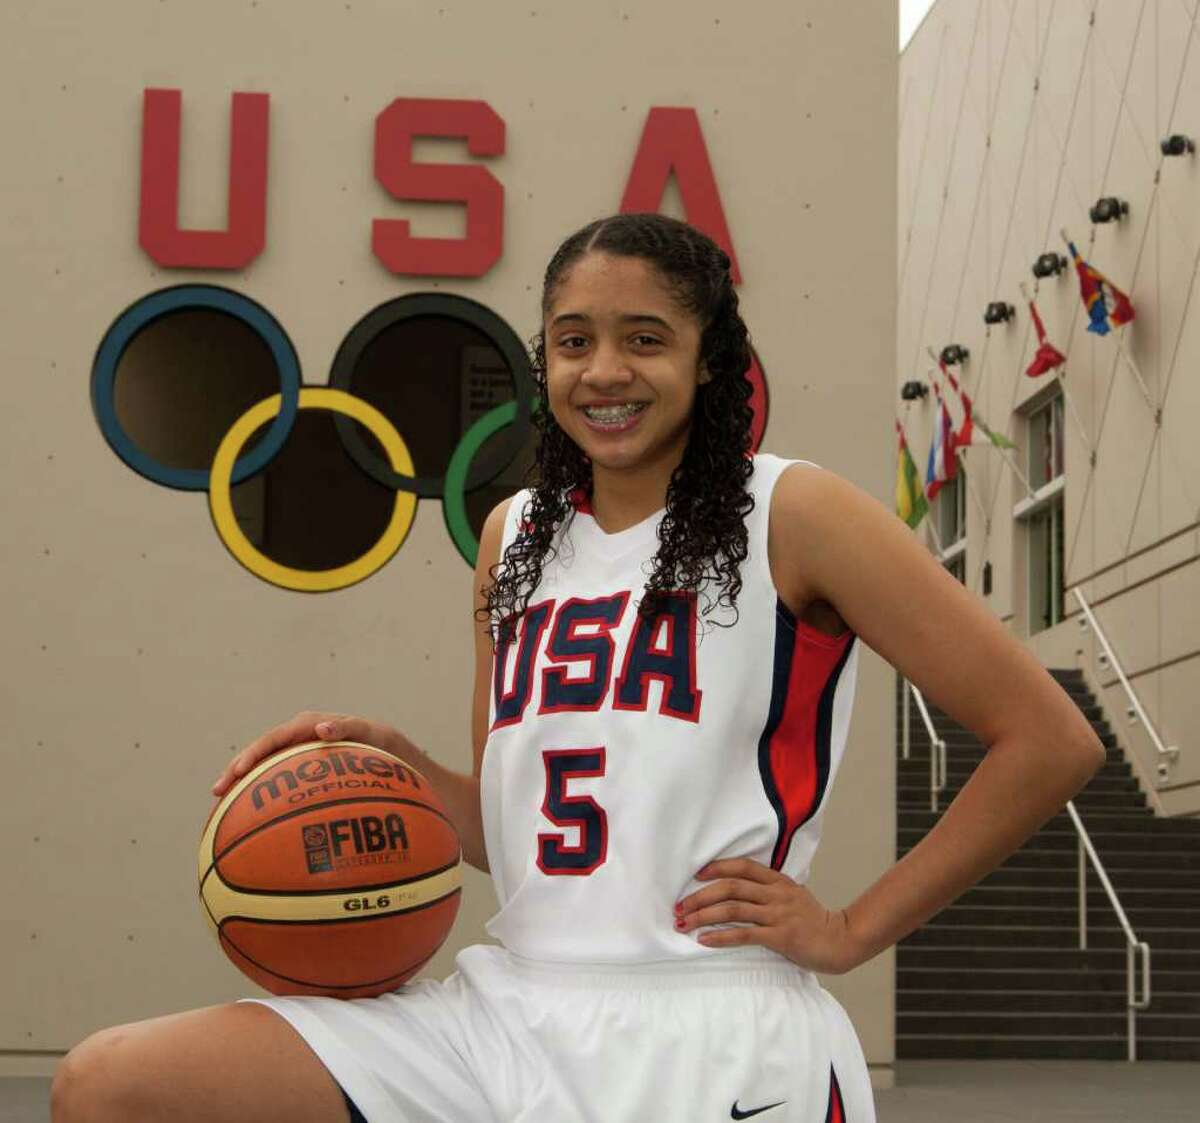 Recee' Caldwell, a 5-foot-8 point guard, was the youngest on Team USA at the tournament this month in Merida, Mexico.